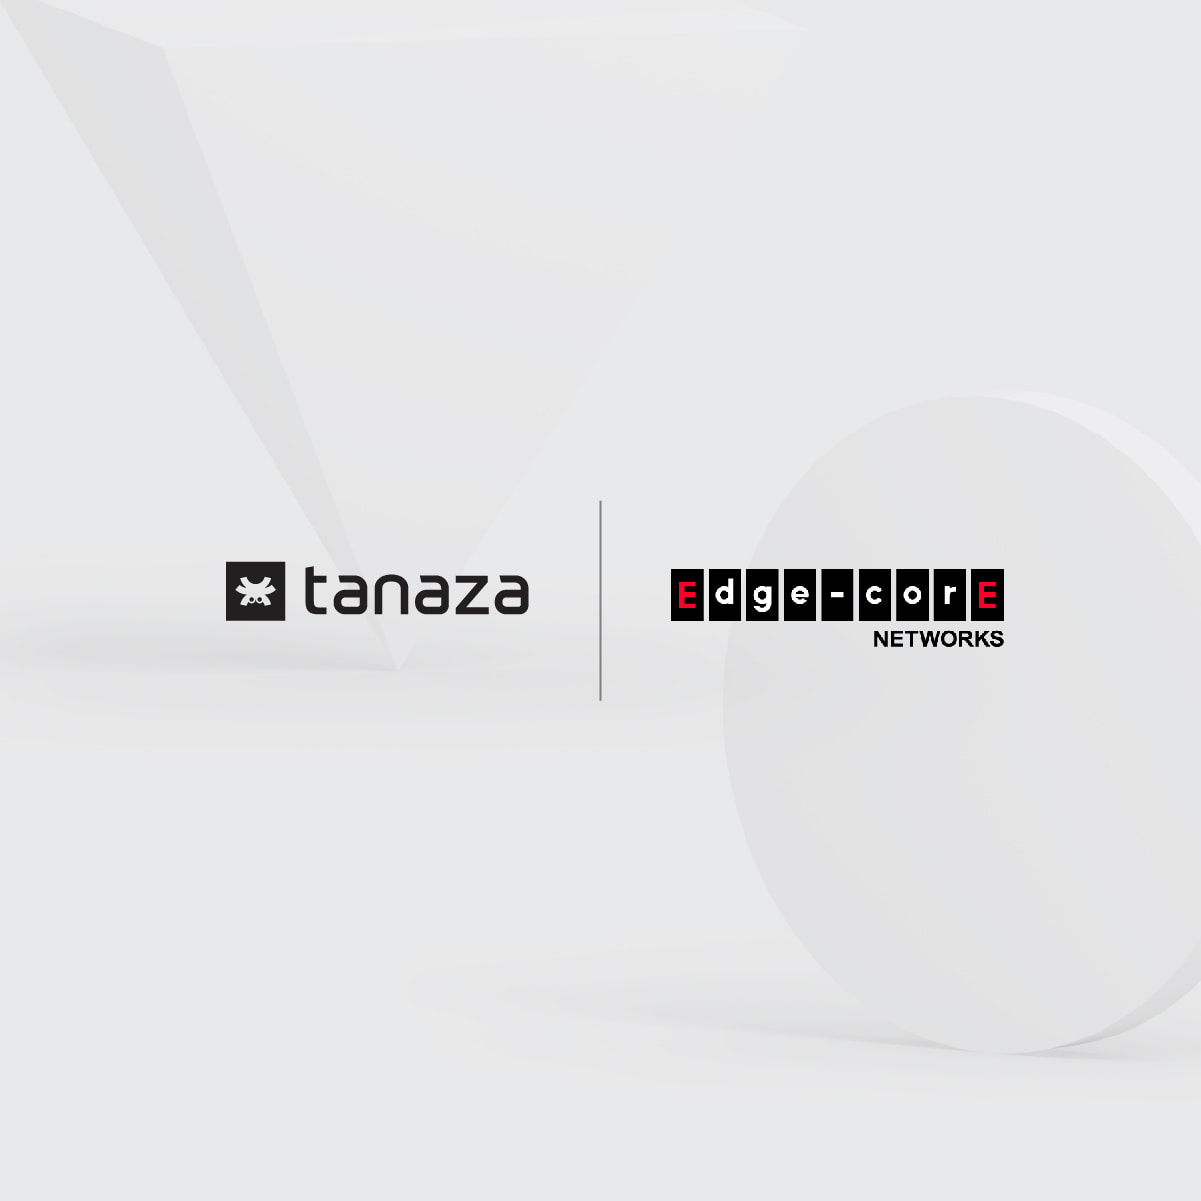 Edgecore Networks and Tanaza